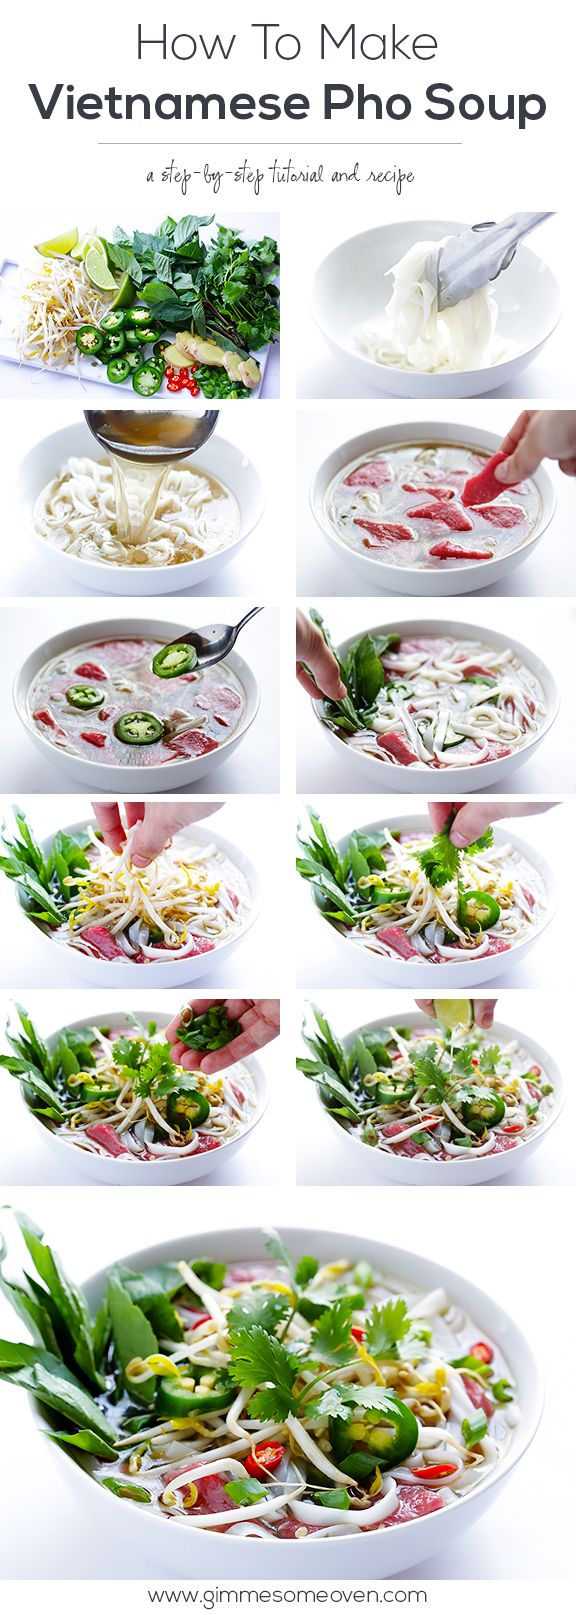 Now that the weather is cooler, we are craving soup. Did you know that delicious Vietnamese Pho Soup is also deceptively easy to make?